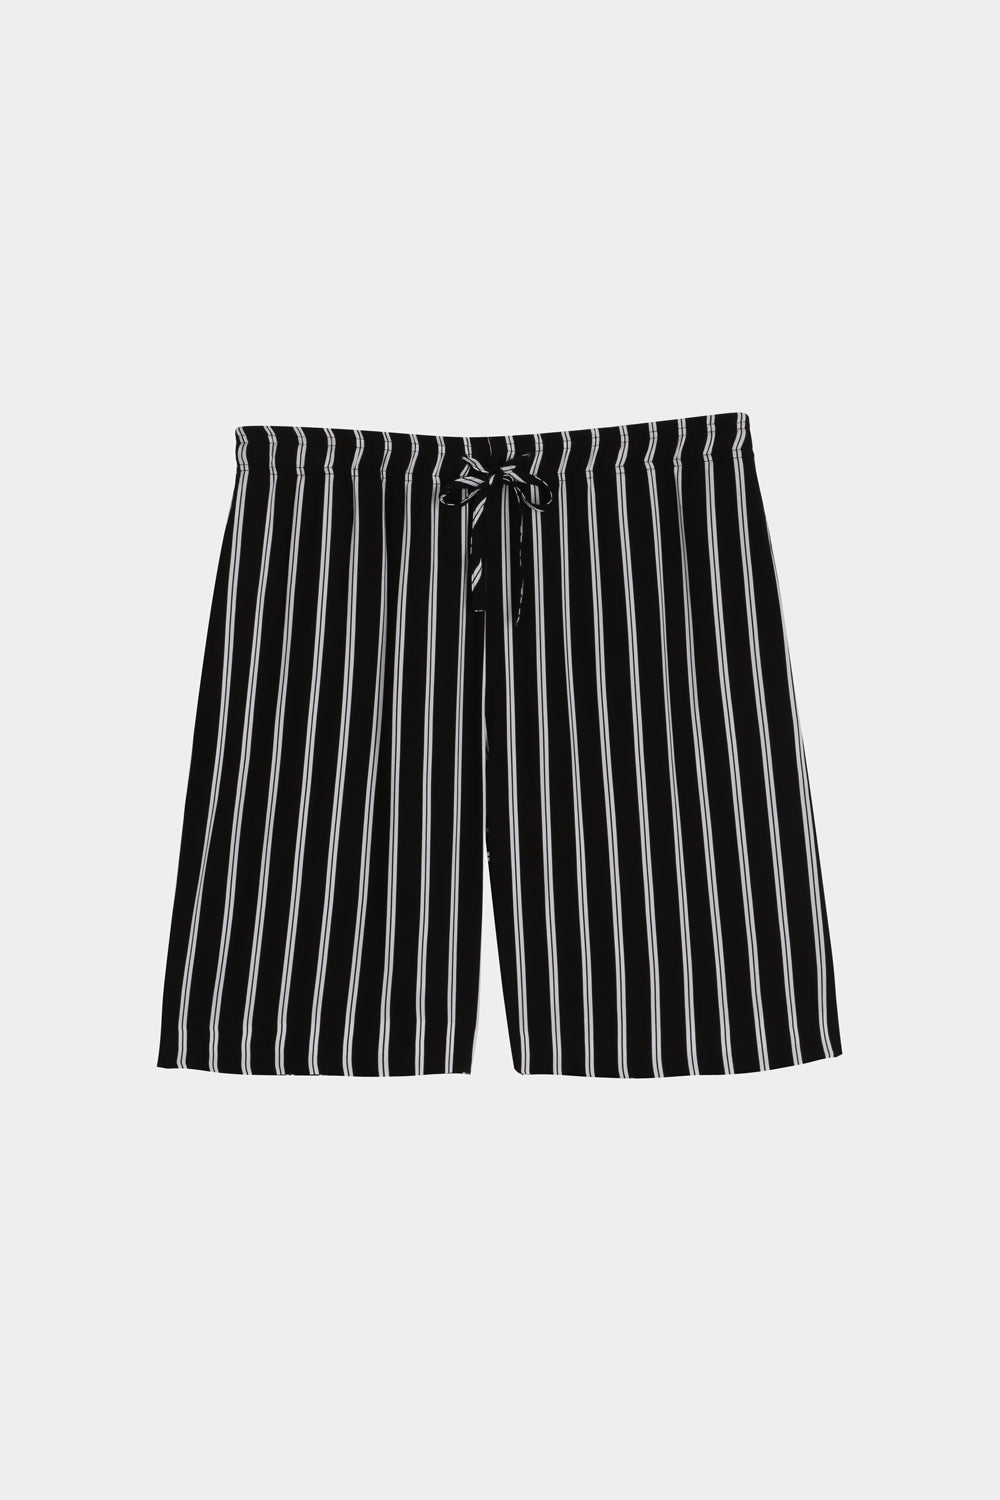 Striped long drawstring shorts